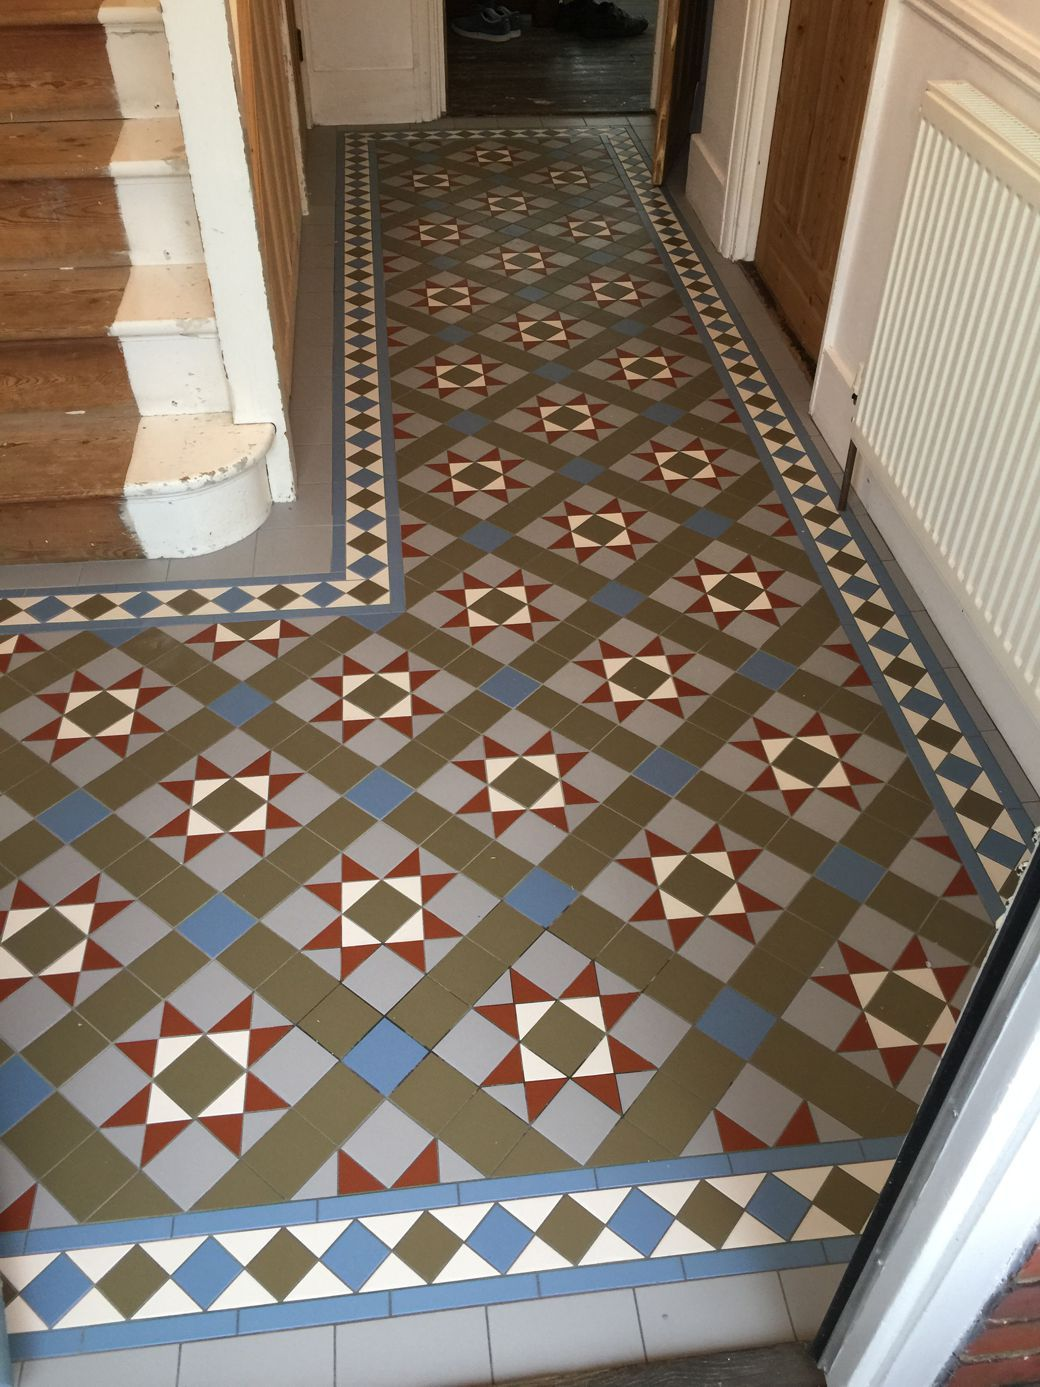 Victorian floor tiles gallery original style floors period floors victorian floor tiles gallery original style floors period floors dailygadgetfo Image collections